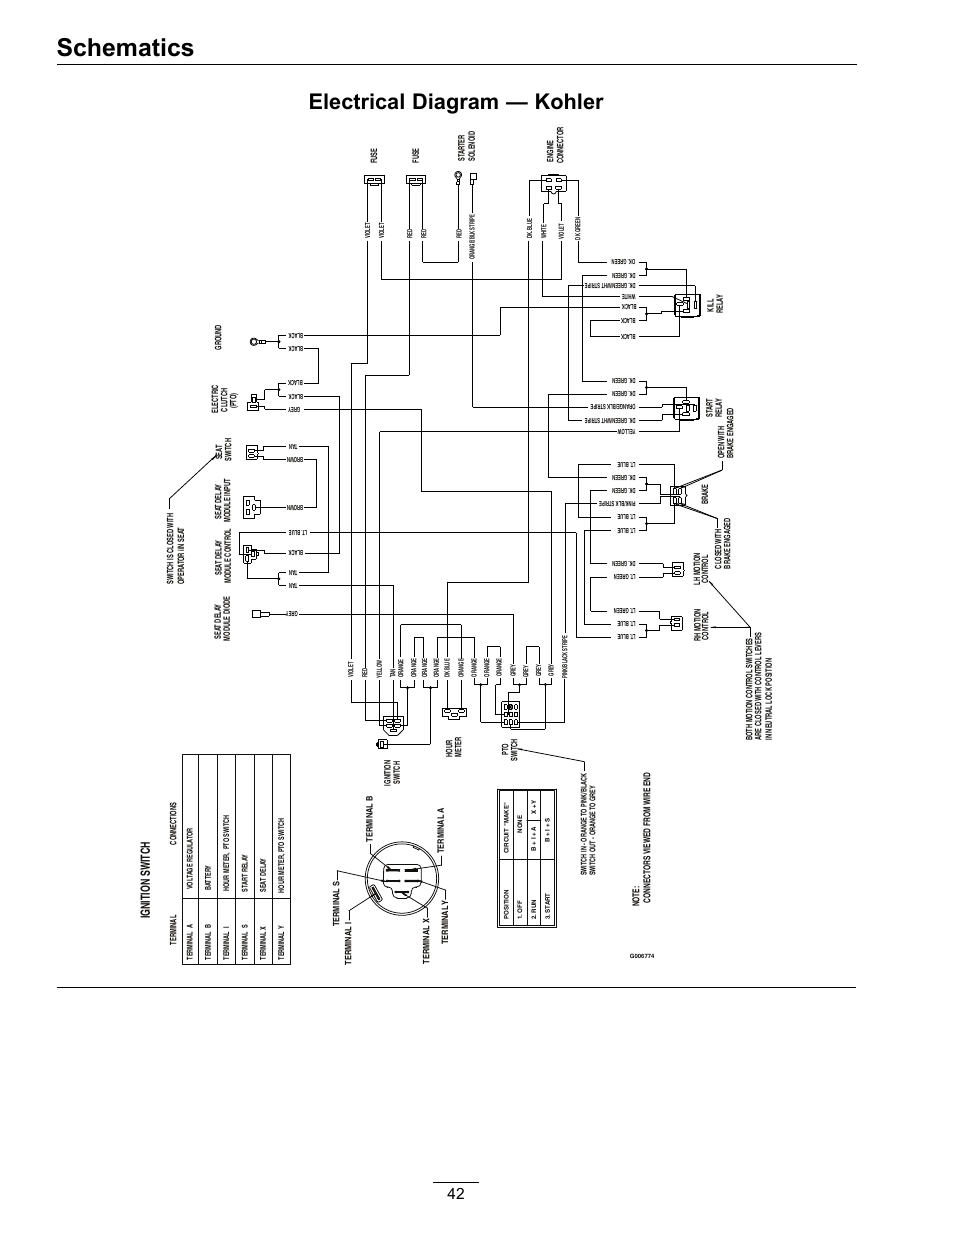 Hubbell Occupancy Sensor Wiring Diagram Occupancy Sensors Lighting ...